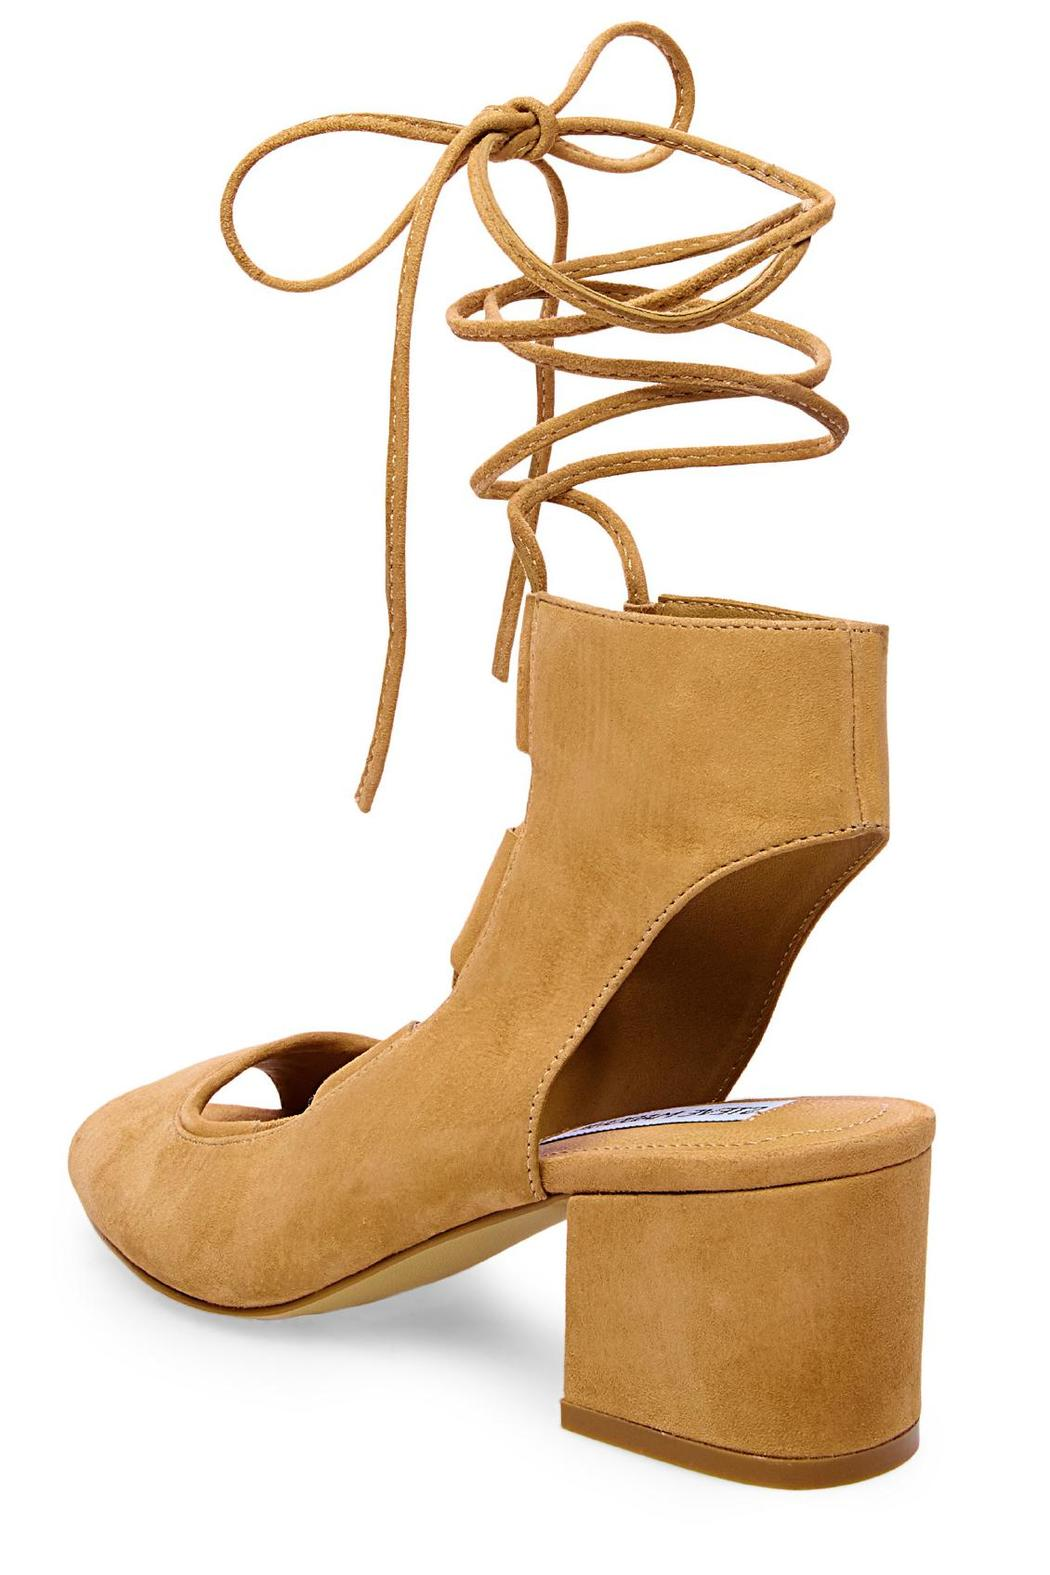 Steve Madden Lace Up Sandal - Front Full Image